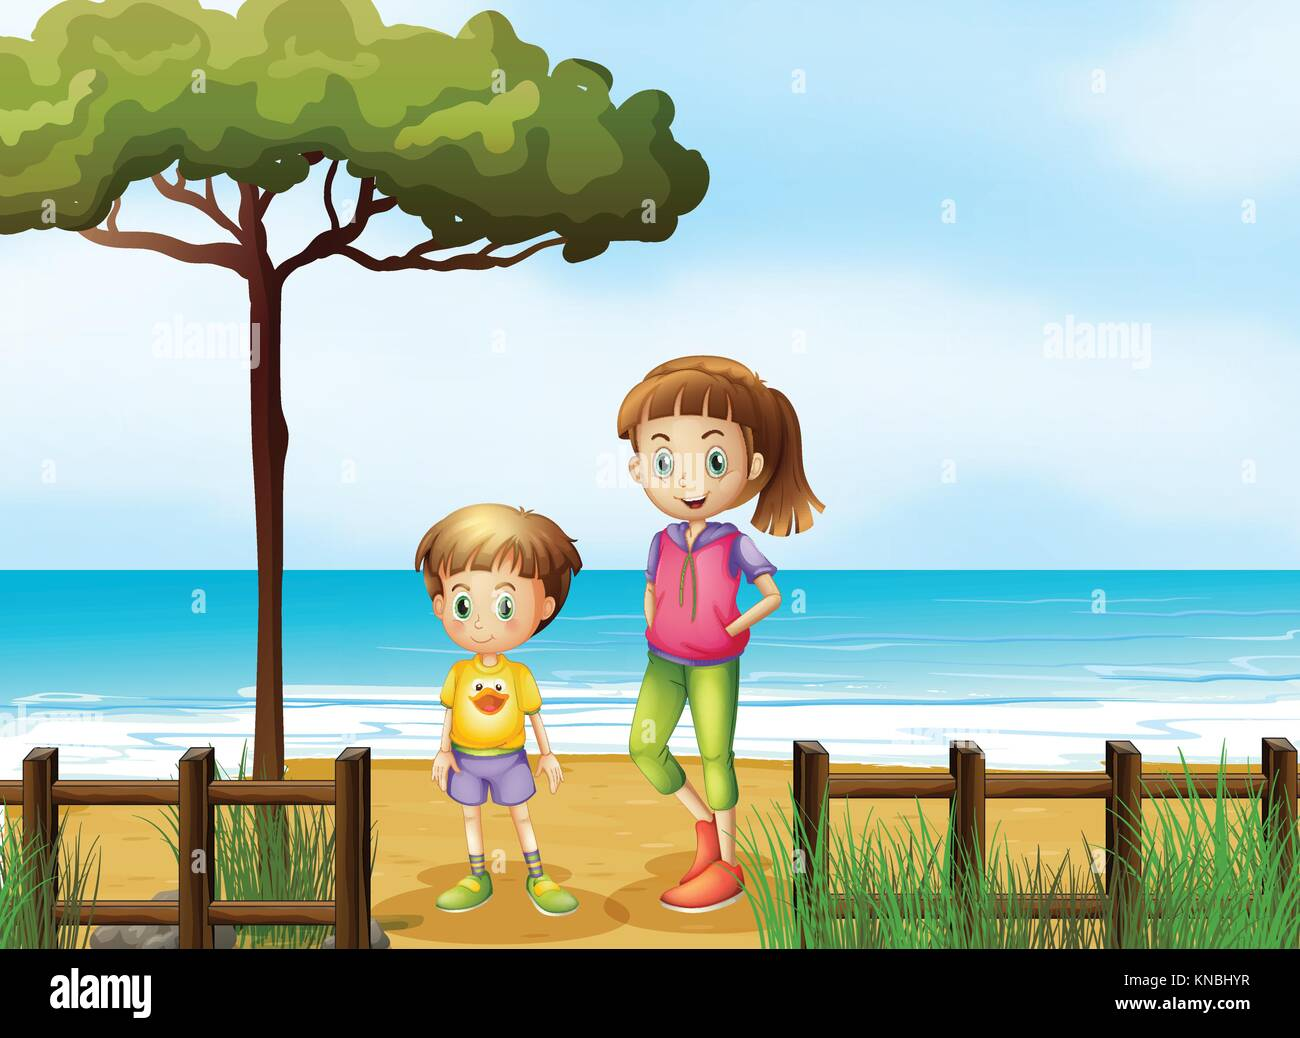 Illustration of a smiling boy and a girl standing on a beach - Stock Vector